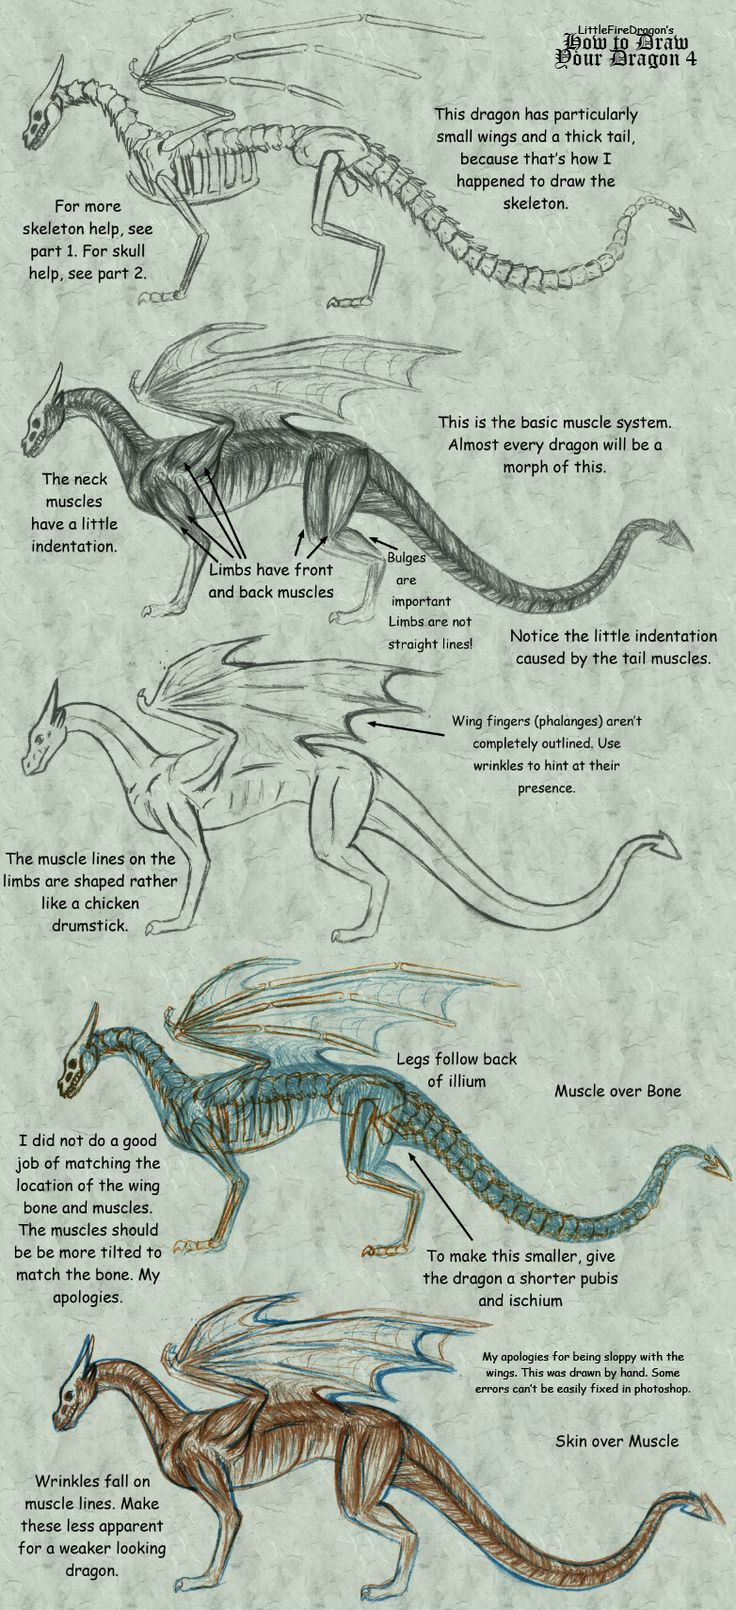 25 unique how to draw dragons ideas on pinterest dragon art how to draw your dragon 4 by littlefiredragoniantart on deviantart ccuart Images